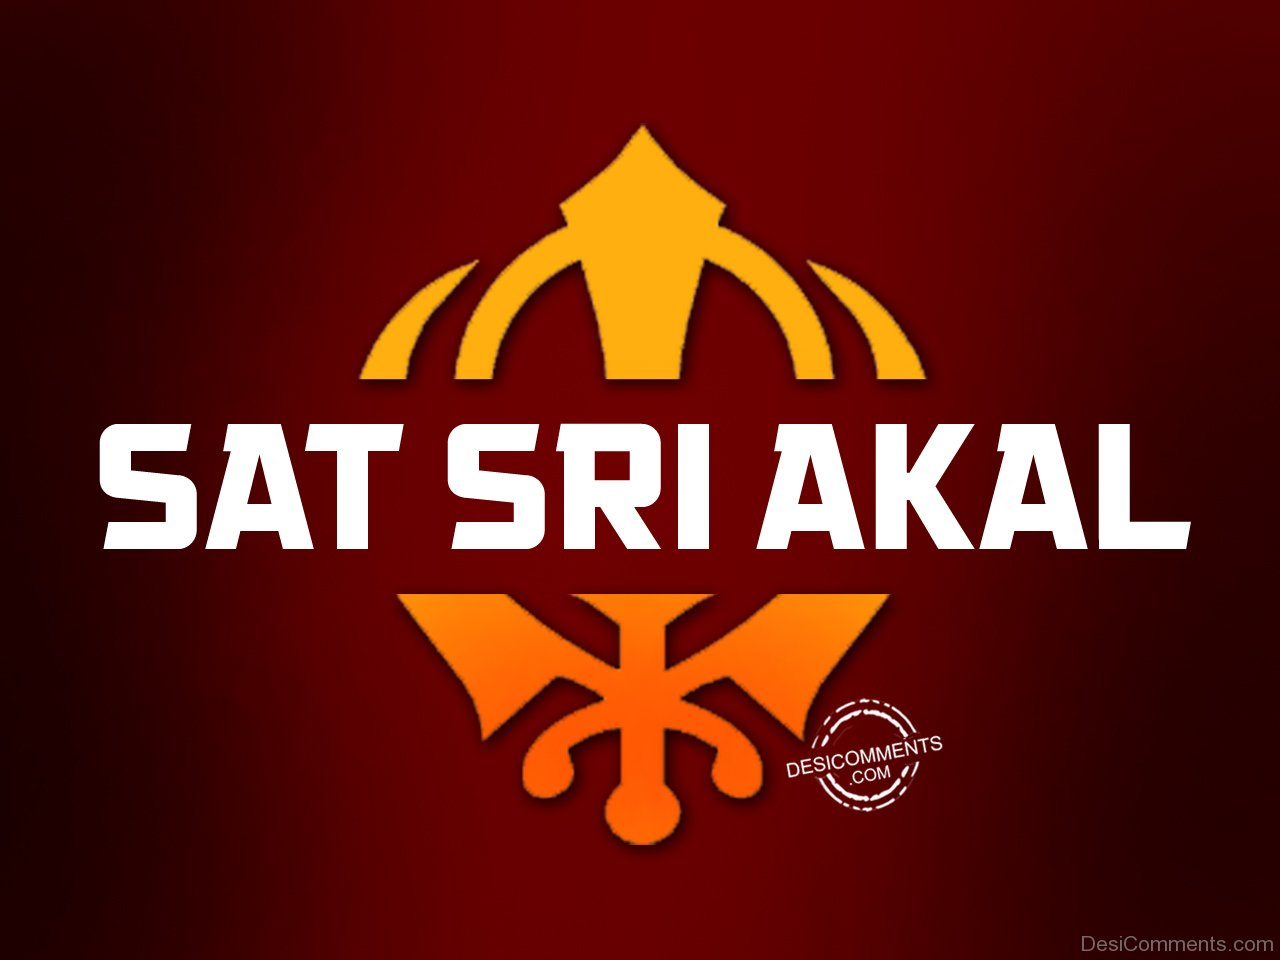 SAT: Sat Sri Akaal Pictures, Images, Graphics For Facebook